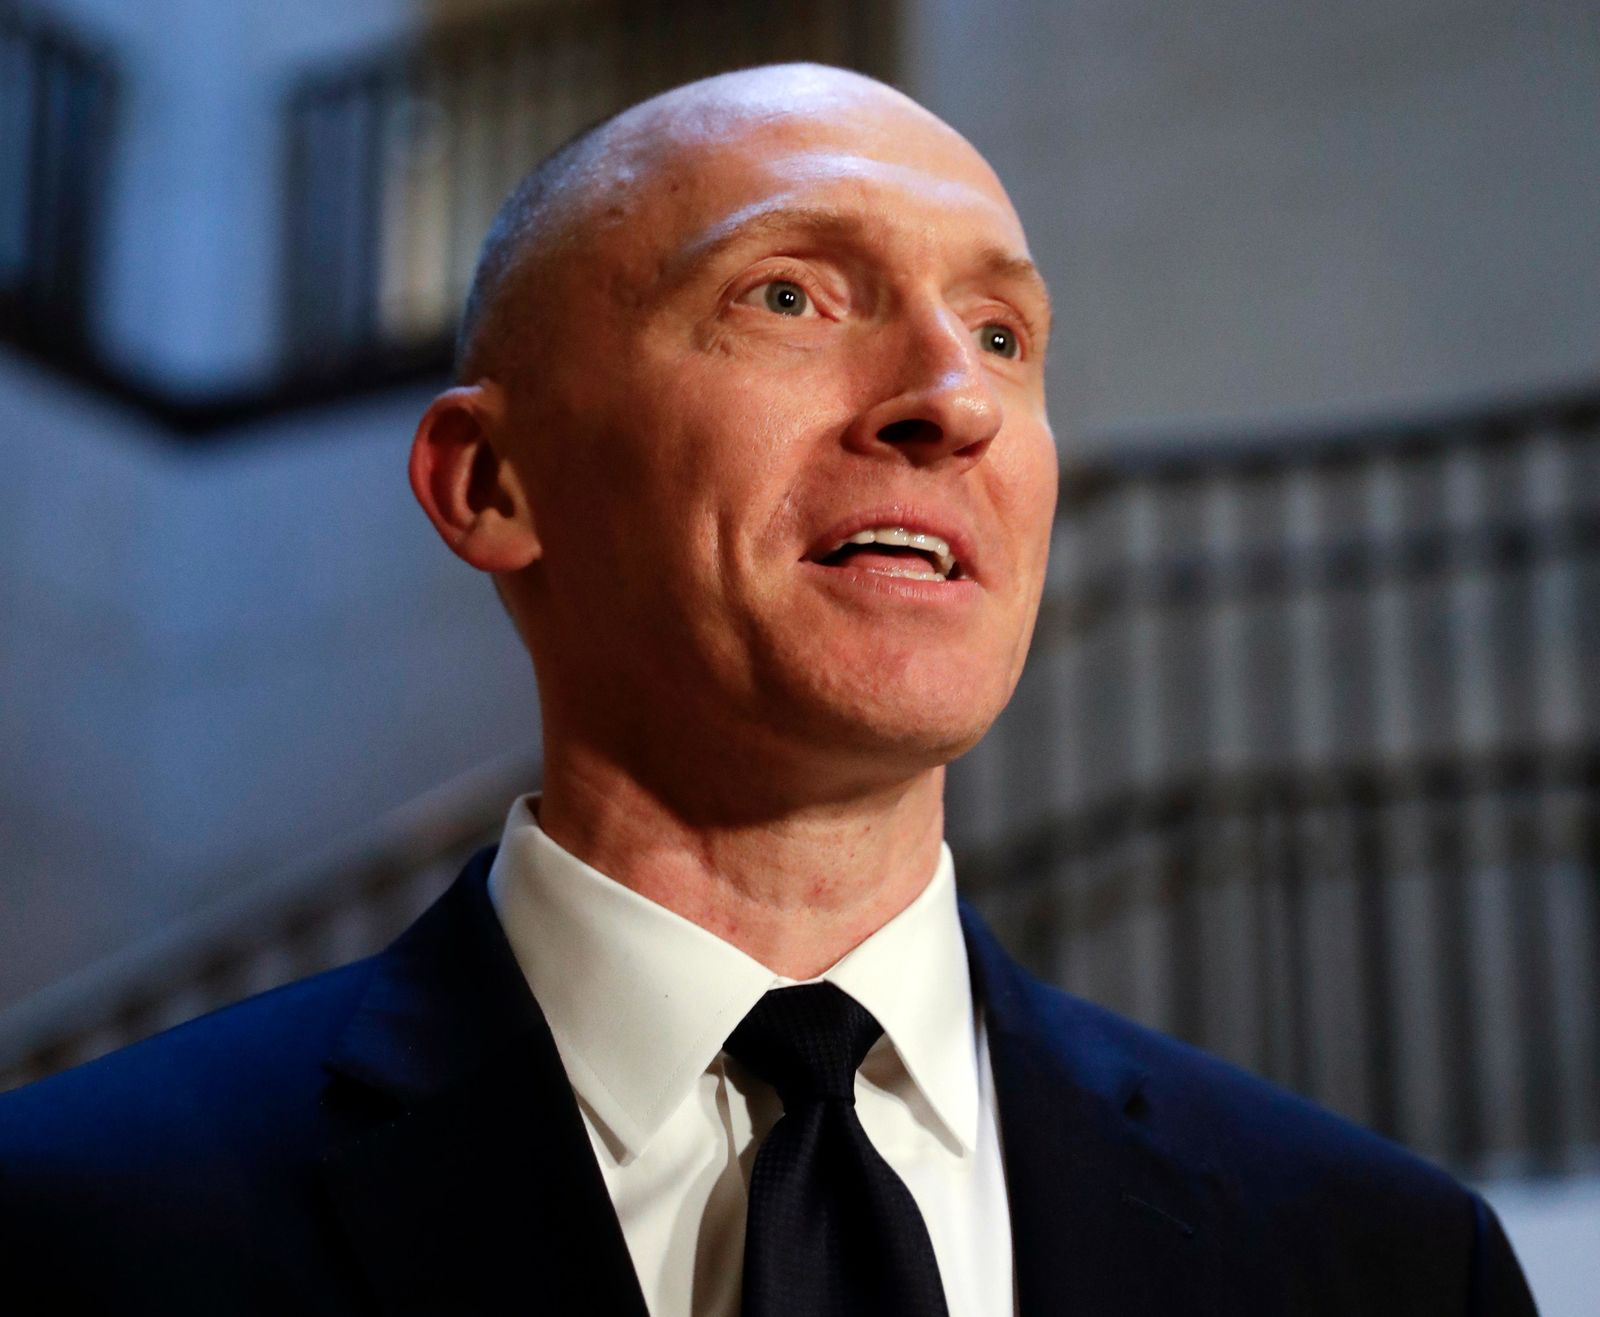 In this Nov. 2, 2017, file photo, Carter Page speaks with reporters following a day of questions from the House Intelligence Committee on Capitol Hill in Washington. A new congressional memo alleging FBI surveillance abuse is being used to undermine the legitimacy of special counsel Robert Mueller's Russia investigation. But included in the four-page document are revelations that might complicate the effort. (AP Photo/J. Scott Applewhite)